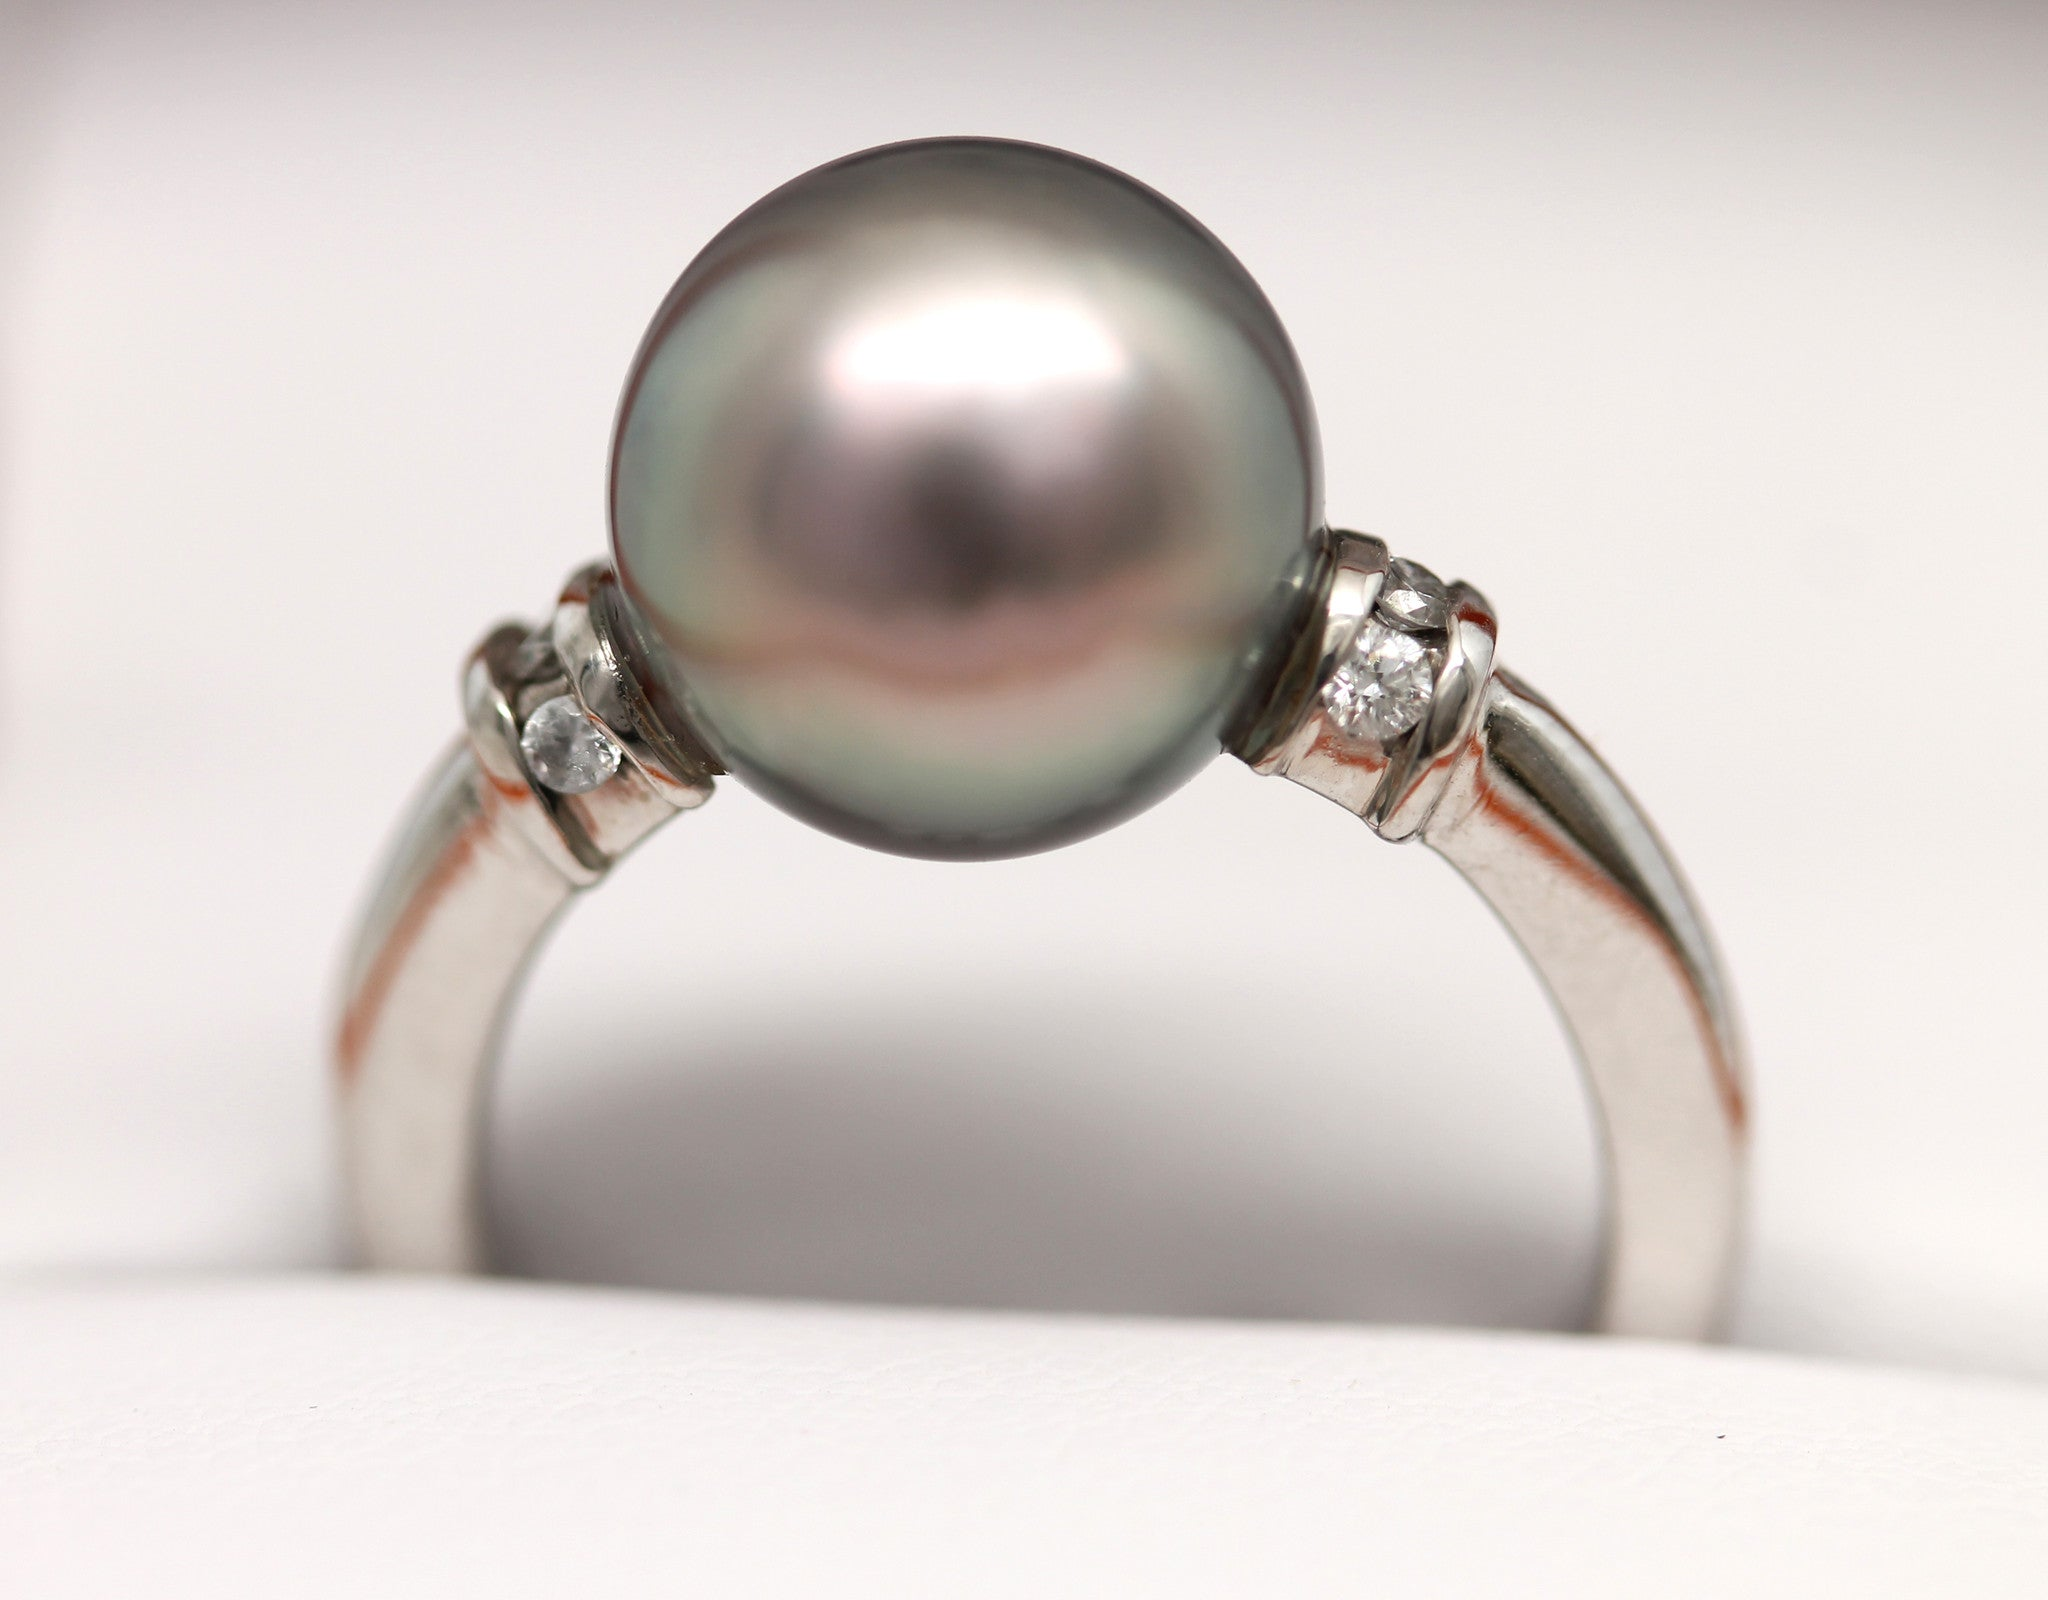 Premium 14K White Gold Ring with stunning Cortez Pearl & Diamonds